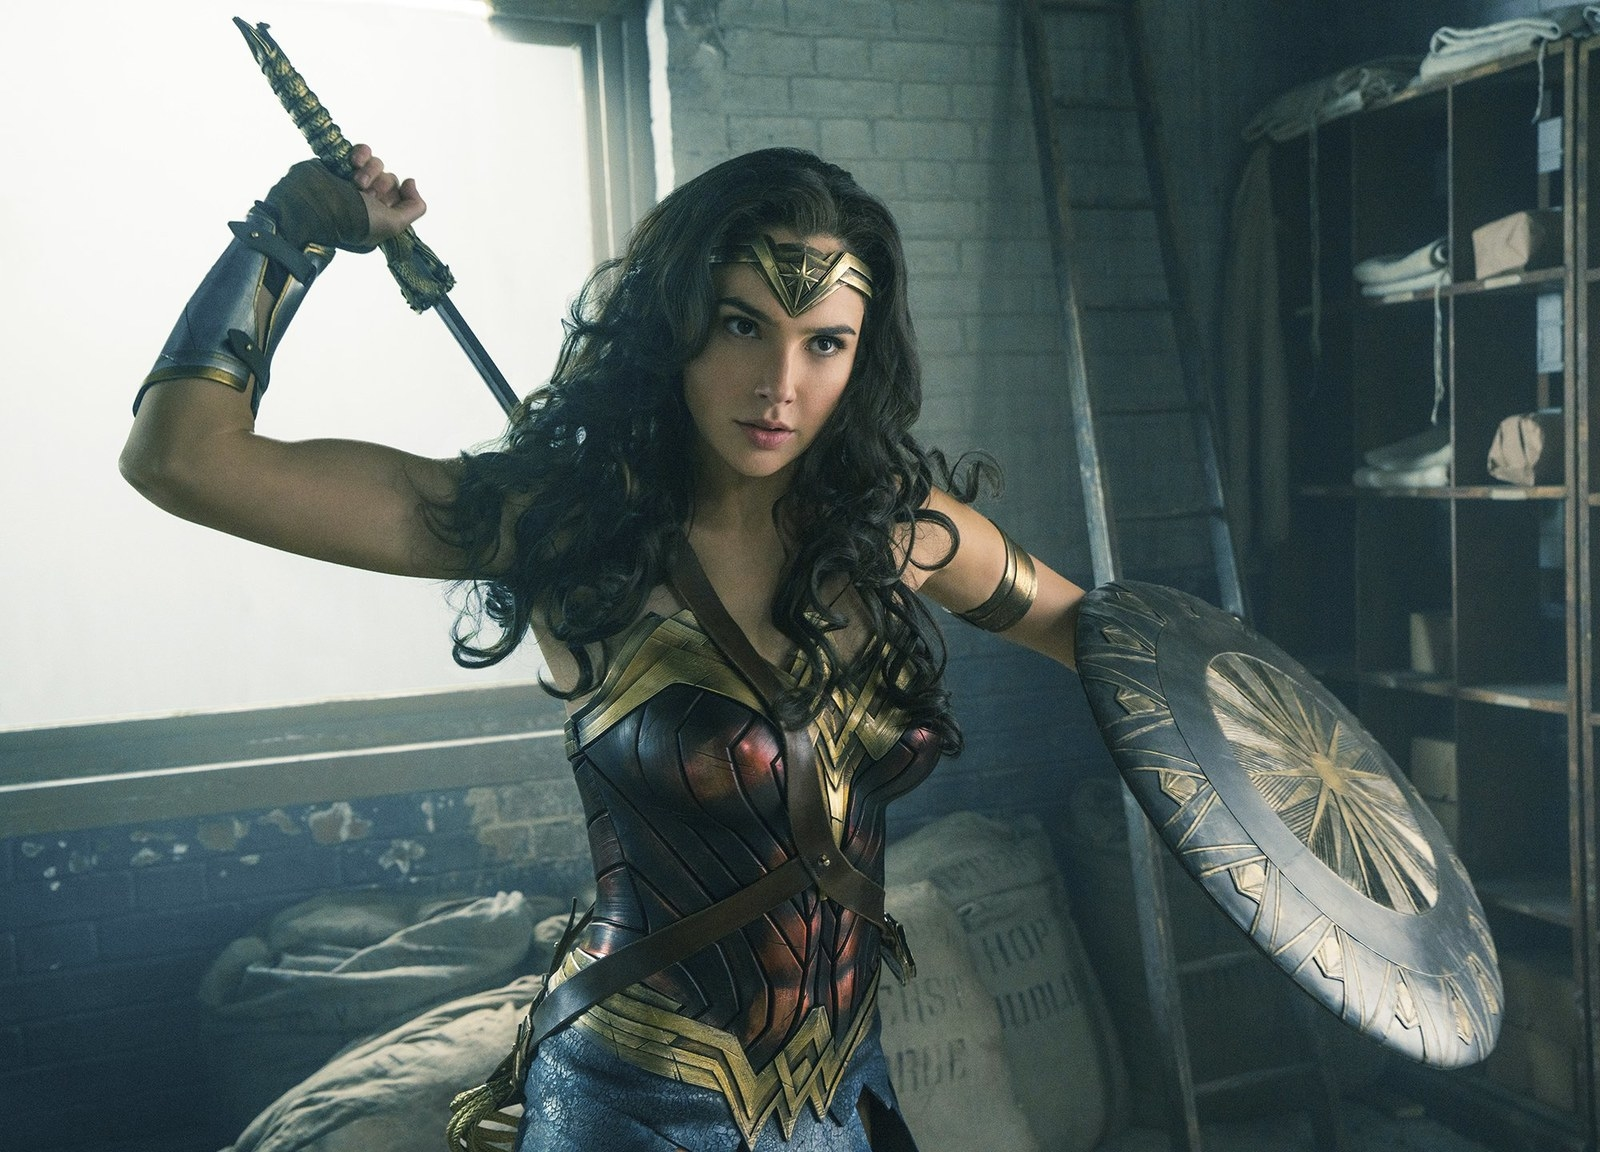 Gal Gadot Makes Surprise Visit To Children's Hospital Dressed As Wonder Woman